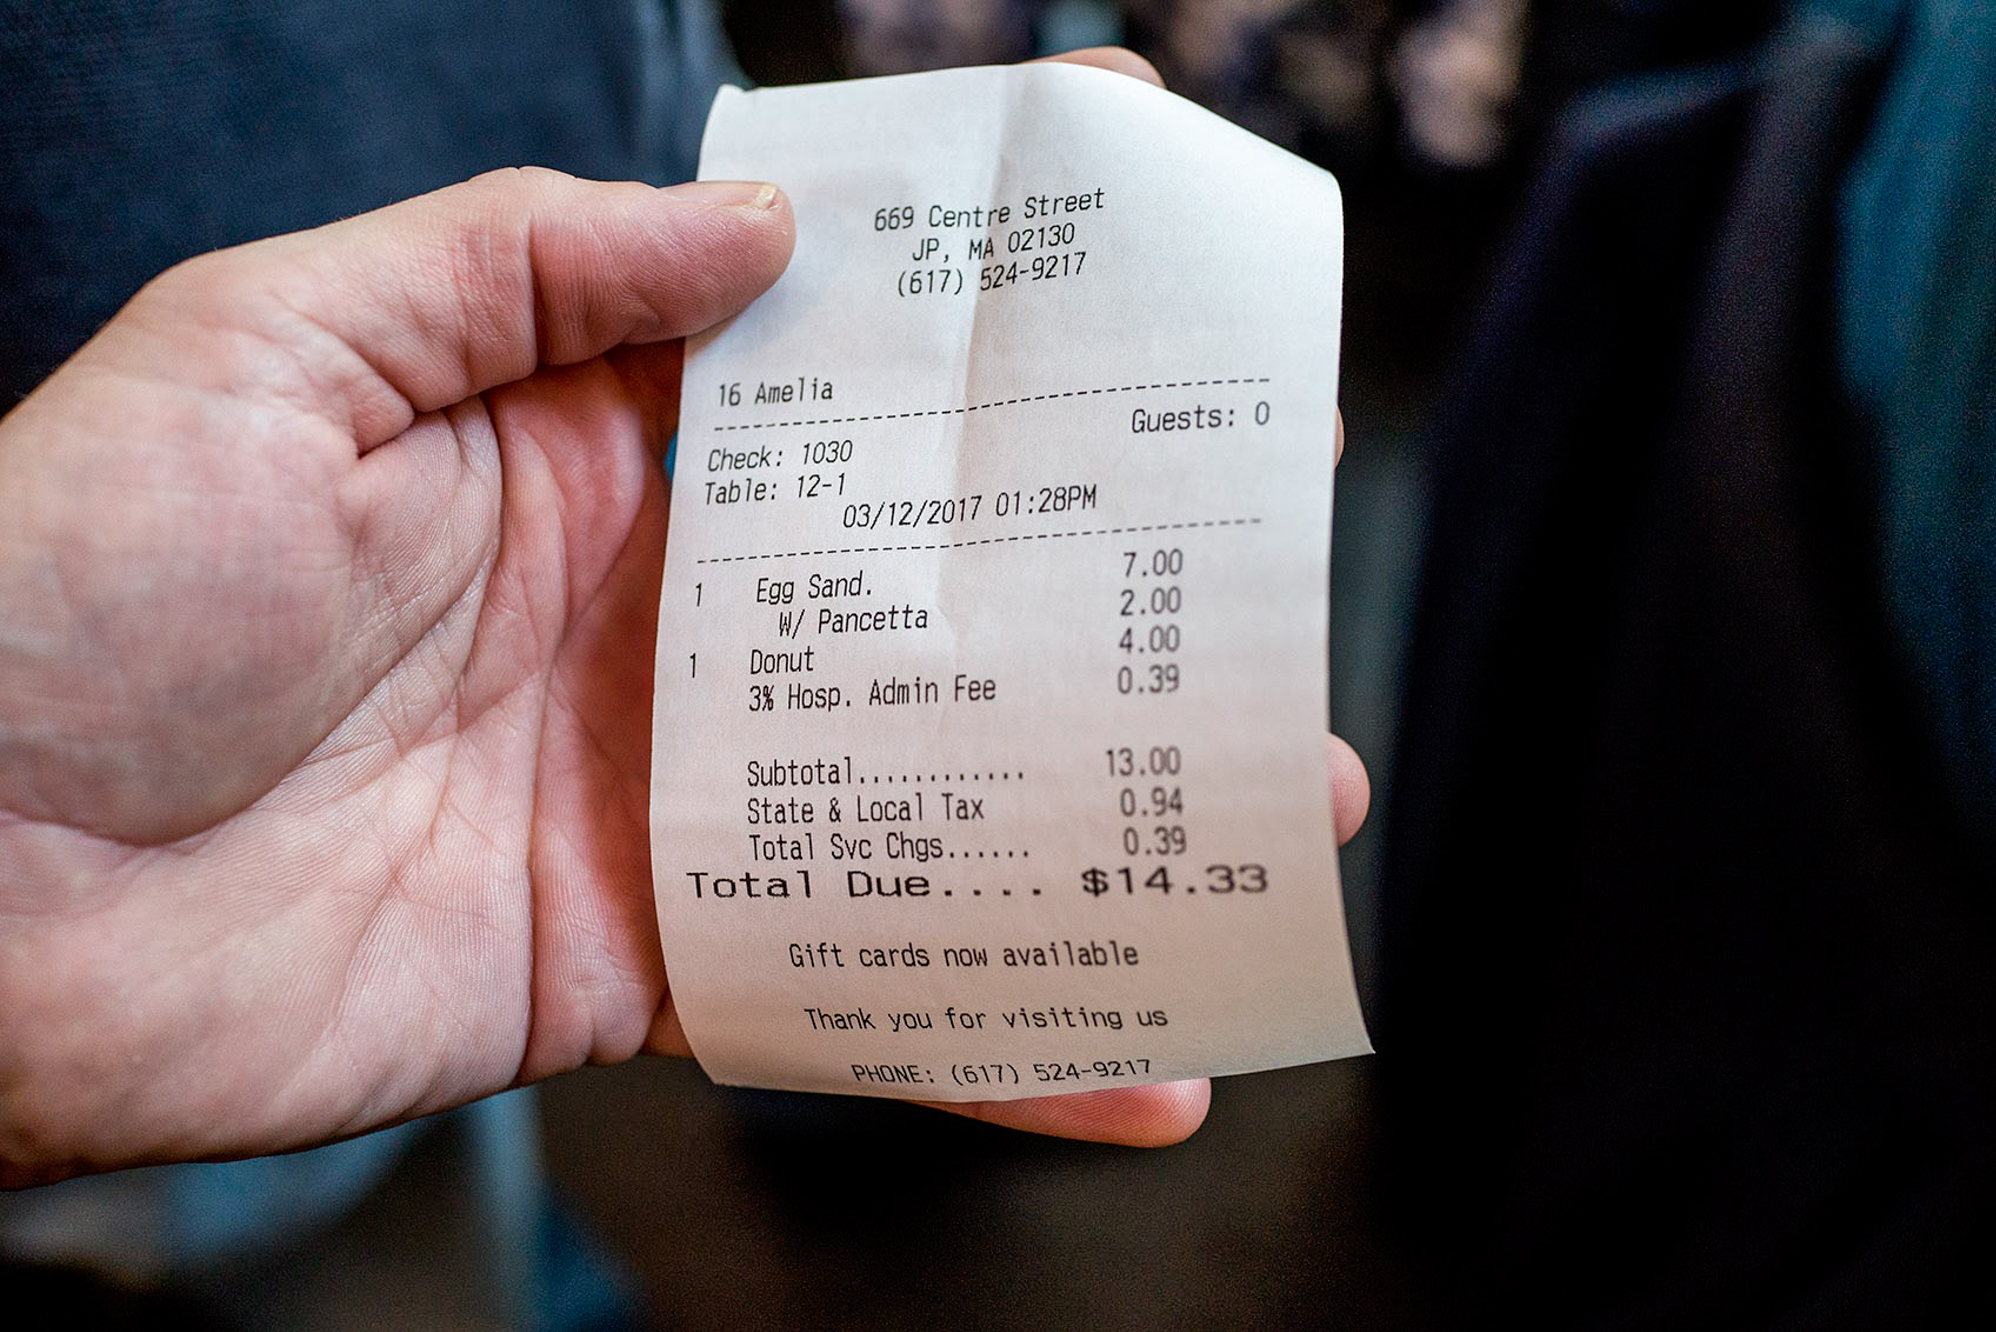 """A receipt from Centre Street Café in Boston includes a 3 percent """"hospitality administration fee,"""" which comes out to 39 cents on $13 of food sales. The entire fee goes to non-tipped employees in the kitchen."""